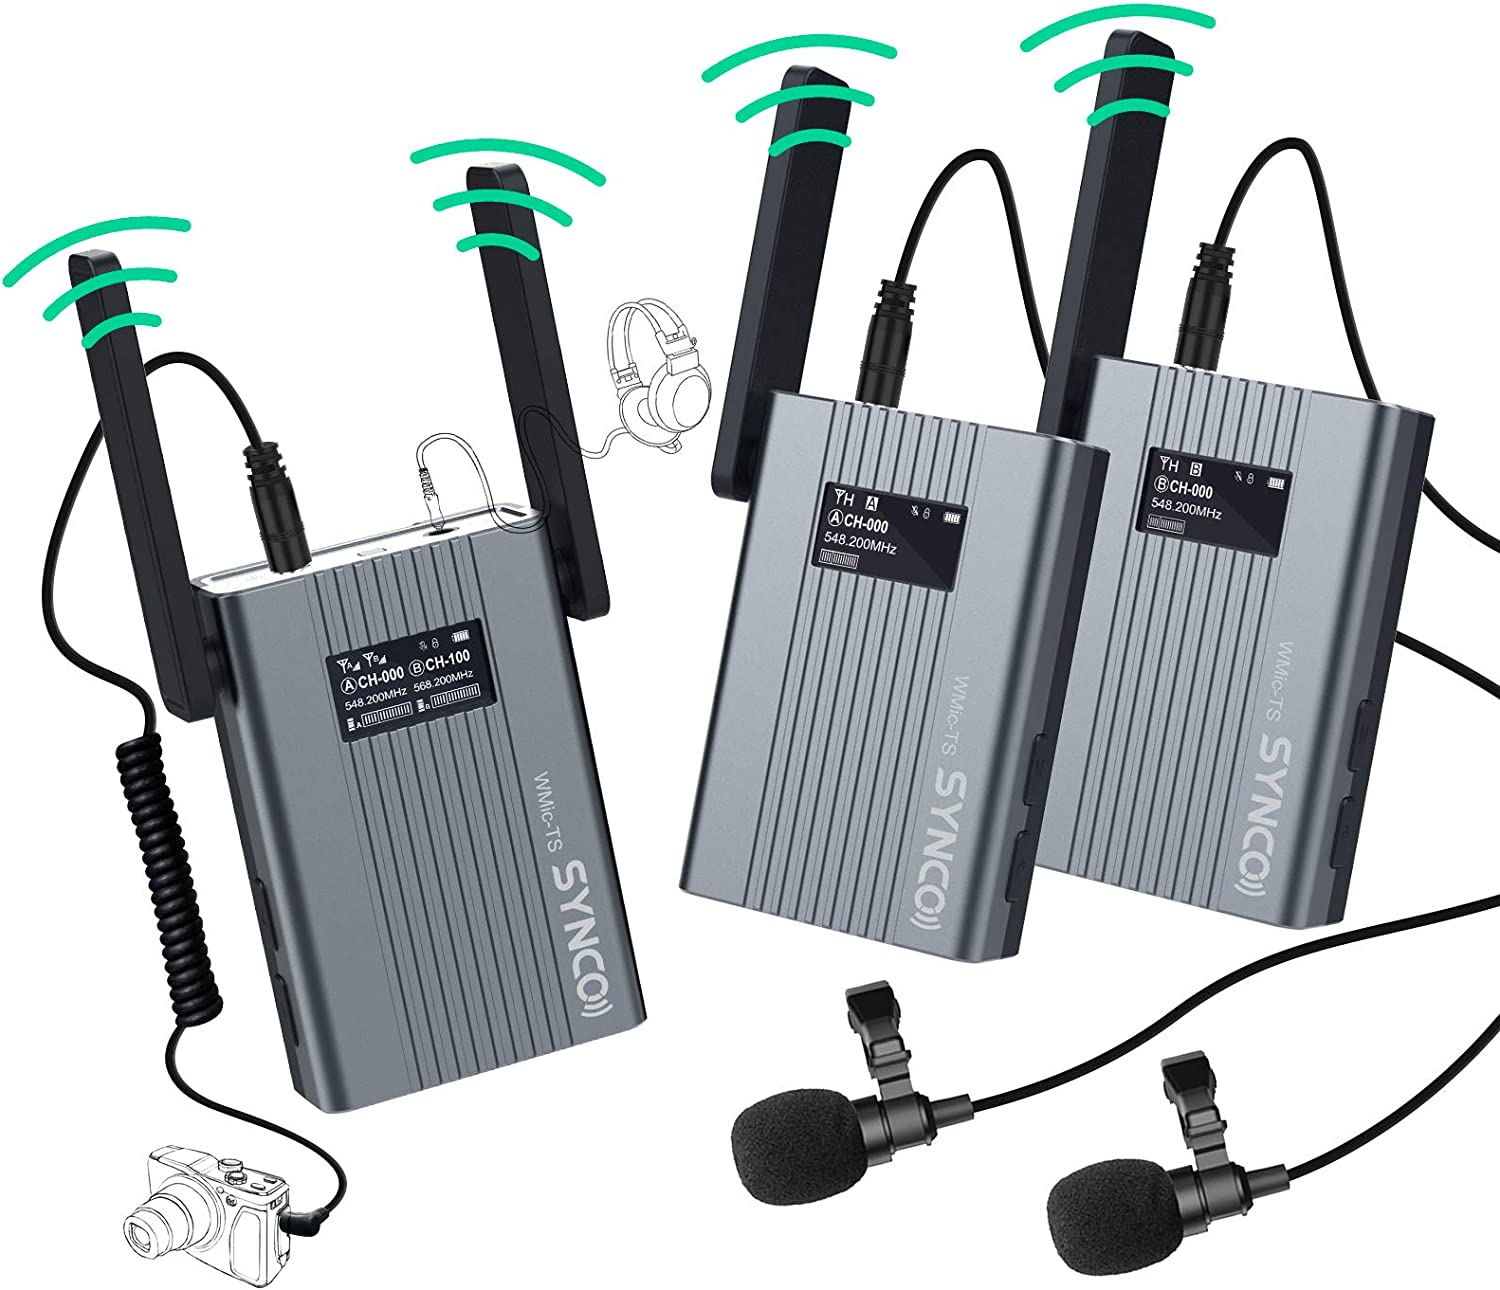 [2021 New Version] SYNCO-TS-UHF-Wireless-Lavalier-Microphone-System, 2 Transmitters 1 Receiver Lav Mic 60 Channels Real-time Monitoring 492ft for Smartphone, DSLR/Mirrorless, Camcorder, Laptop, Tablet